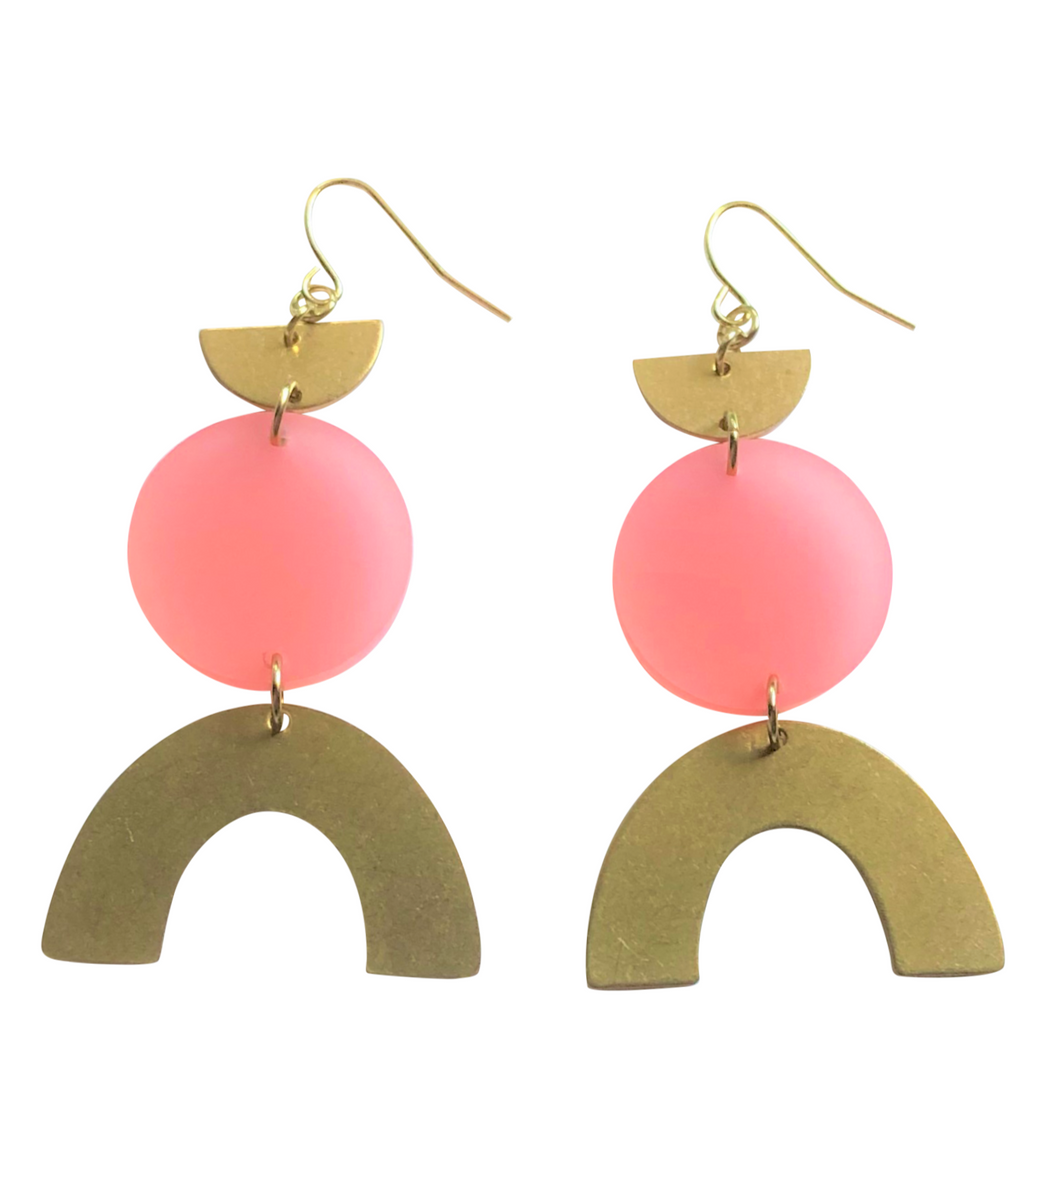 These Tangerine Dream Coral Rainbow gold brass, glitter geometric earrings are fun and will make you feel happy and cheerful, while adding the perfect pop of color to your wardrobe! Our colorful, 70's and 80's inspired earrings are handmade and designed with love in Las Vegas and like totally, make a groovy statement!